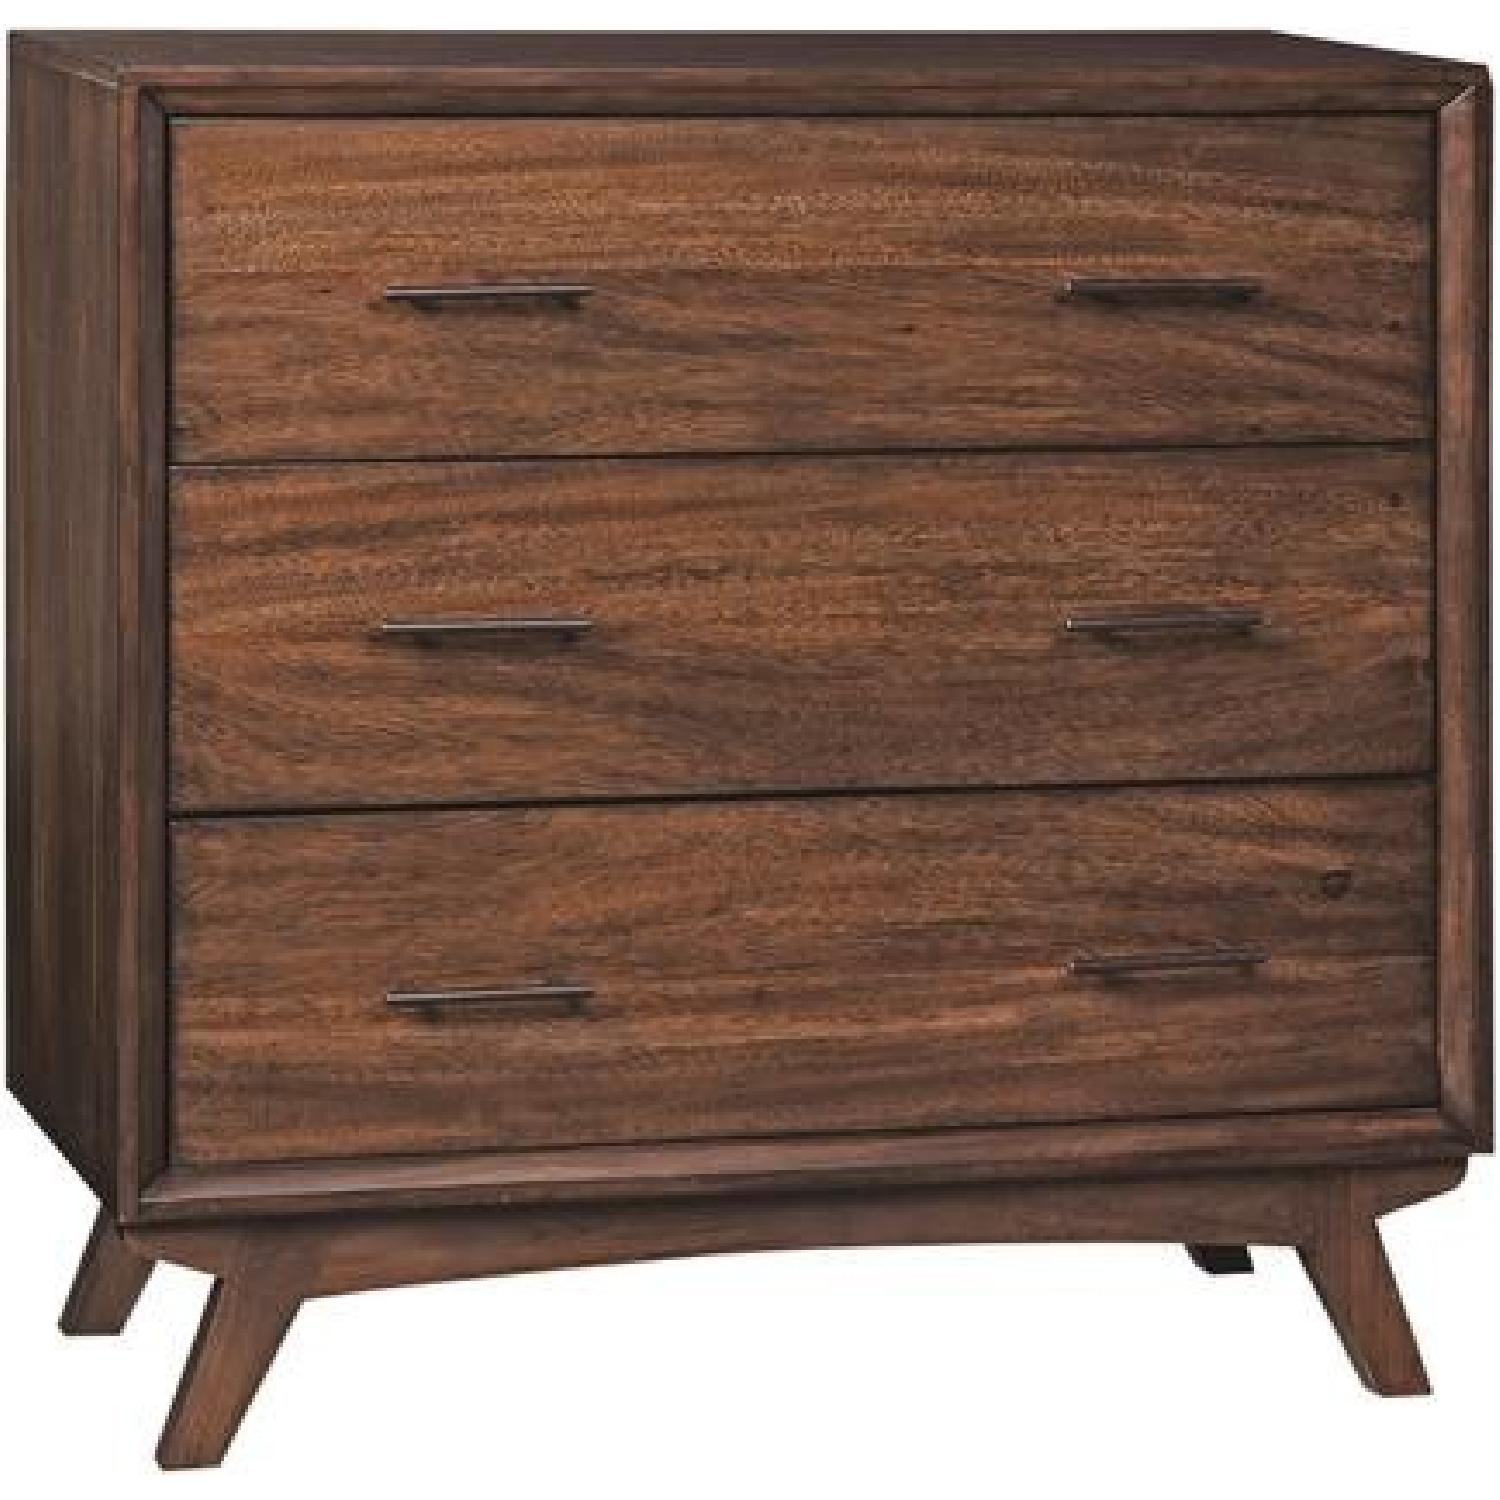 Warm Brown 3 Drawers Accent Cabinet